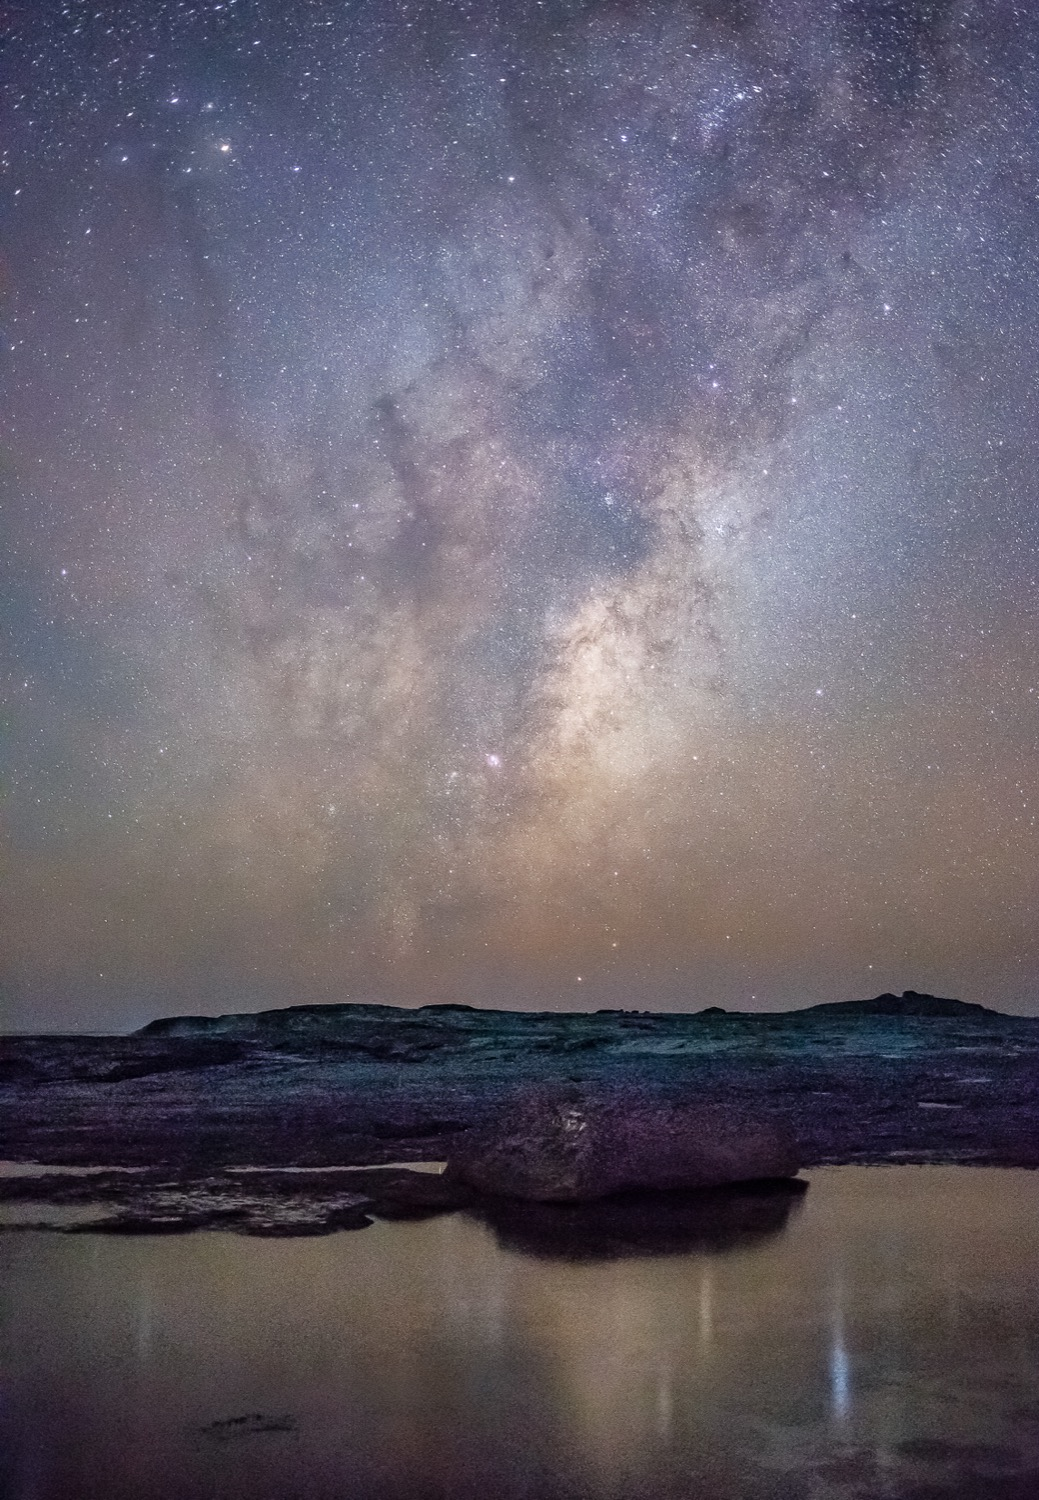 Amber airglow